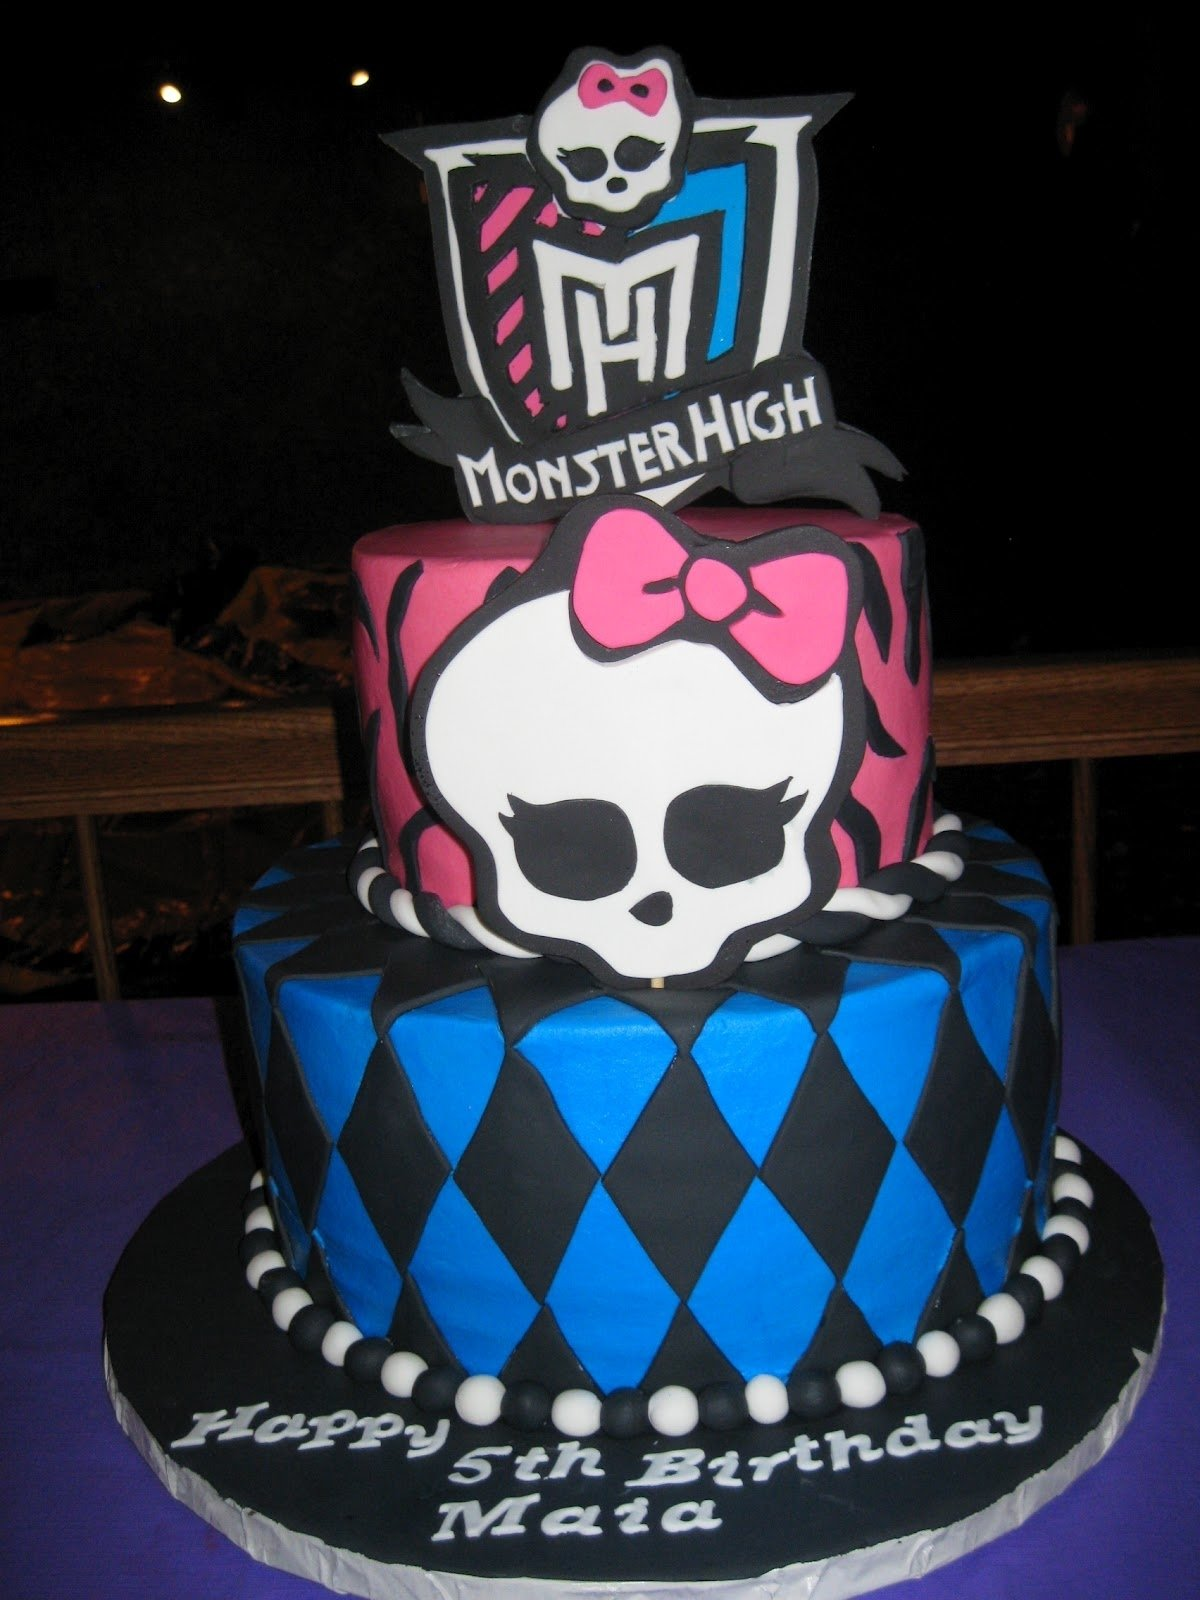 10 Lovable Monster High Birthday Cake Ideas 11 monster higt cakes photo monster high cake monster high 2020